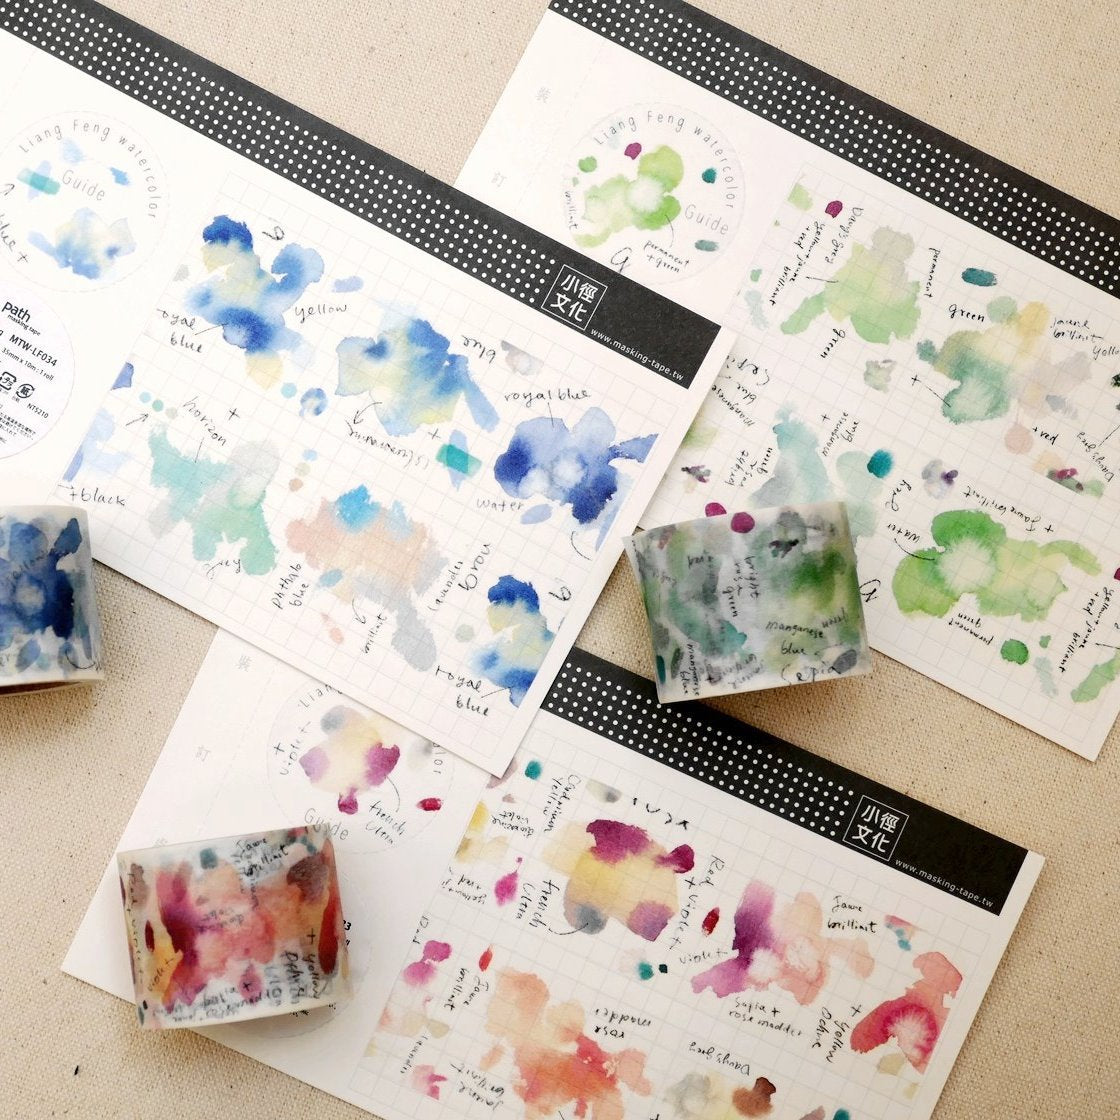 Liang Feng Watercolour Washi Tapes Collection Vol. 2.1